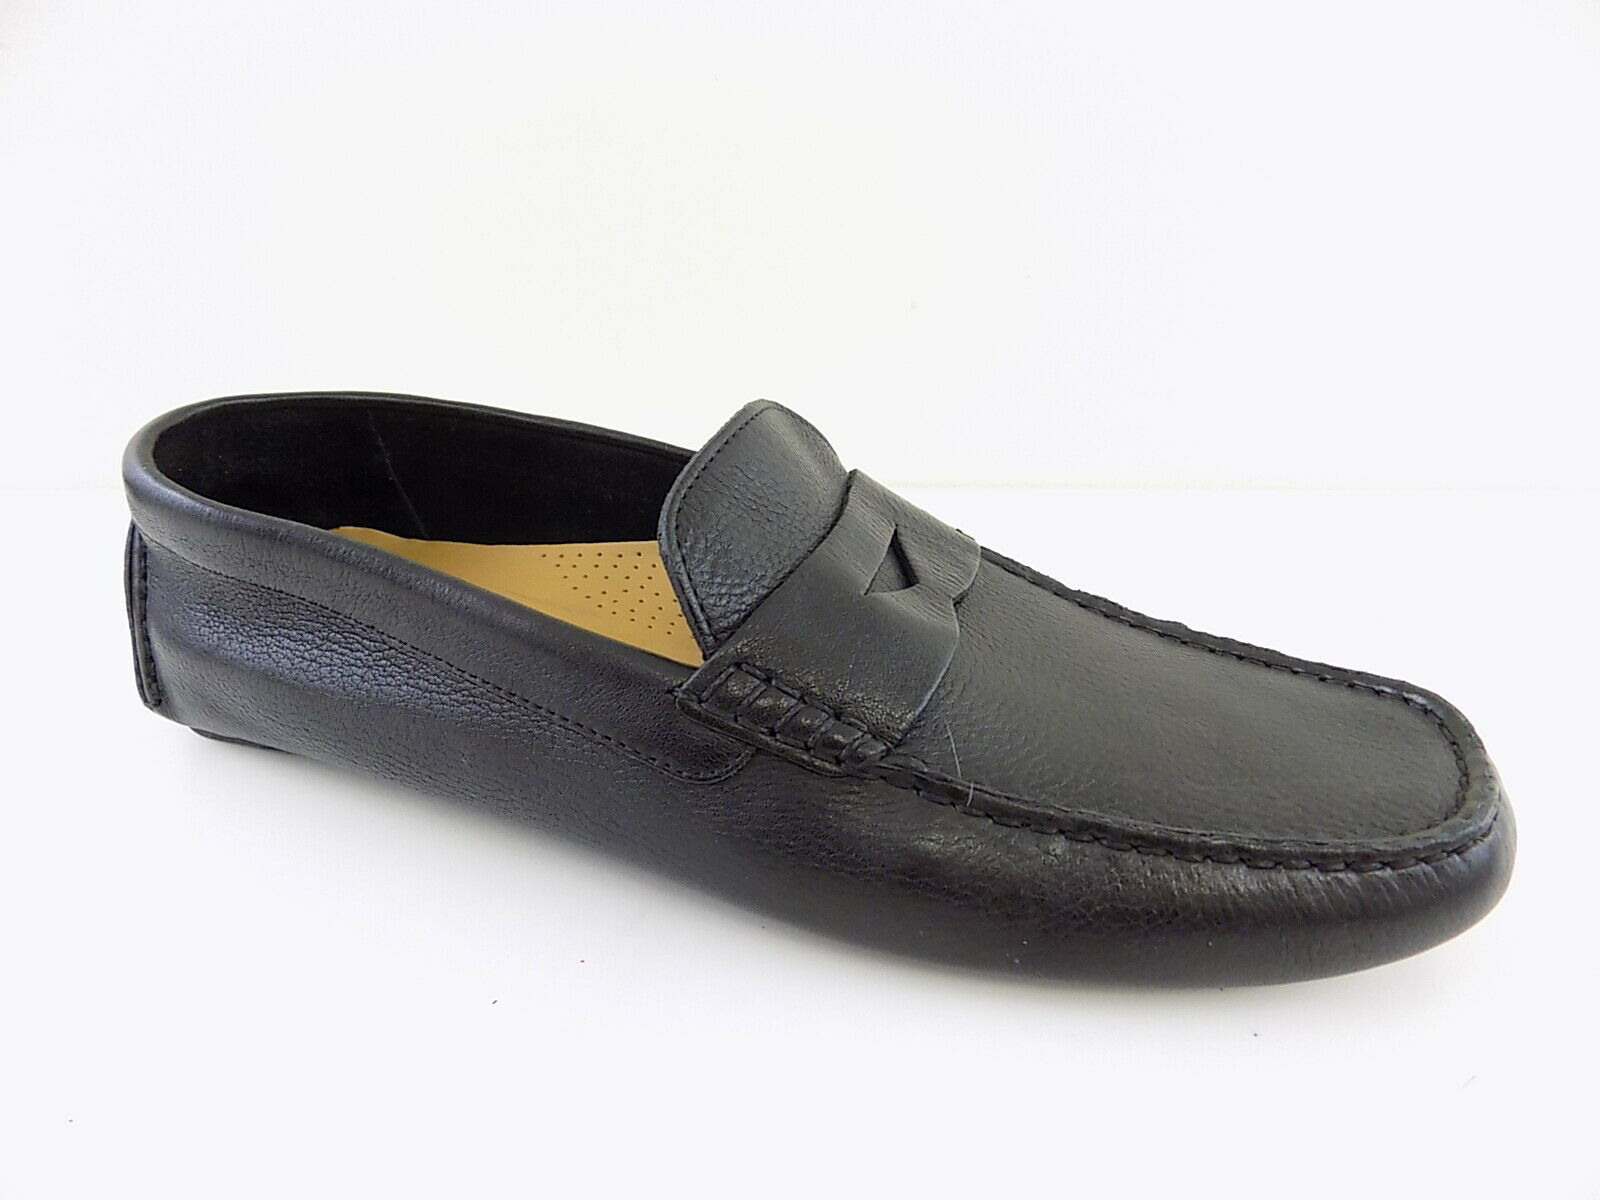 Cole Haan  145 HOWLAND Black MEN SZ 12M Loafers & Slip Ons PENNY shoes D16